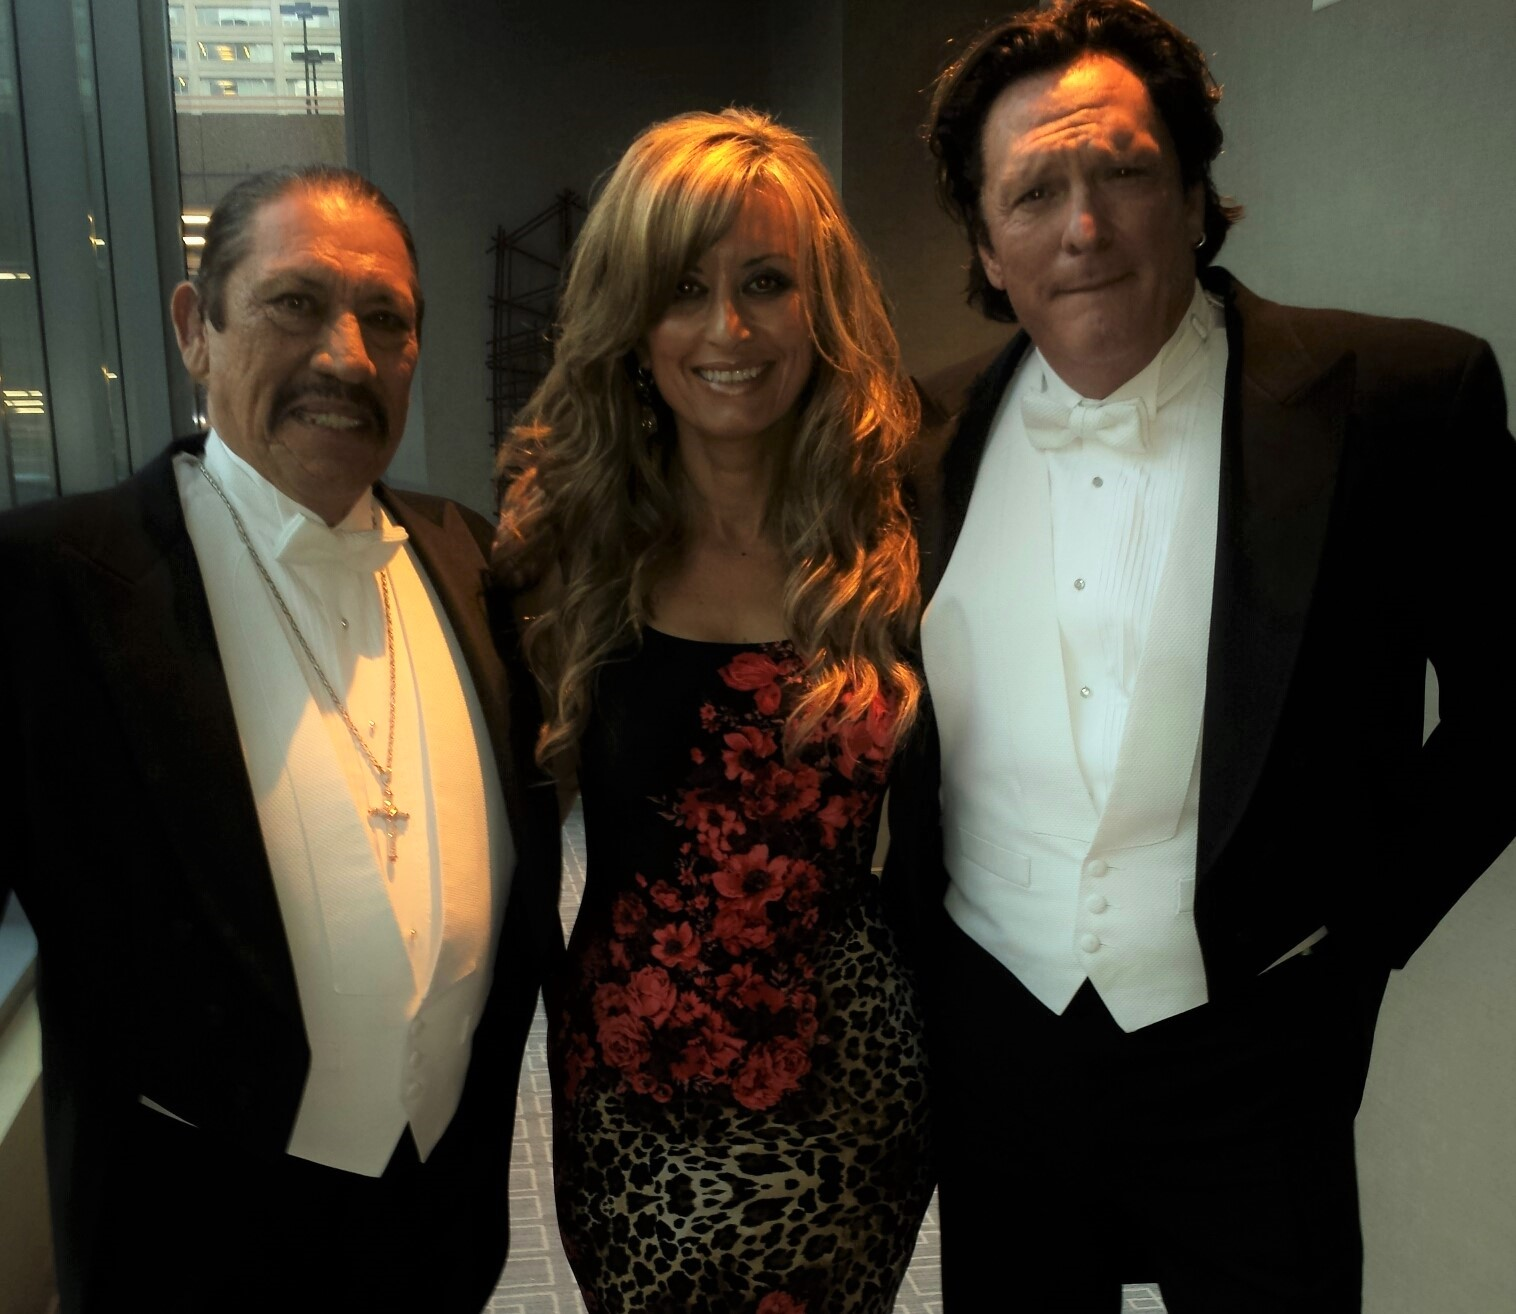 Danny Trejo and Michael Madsen